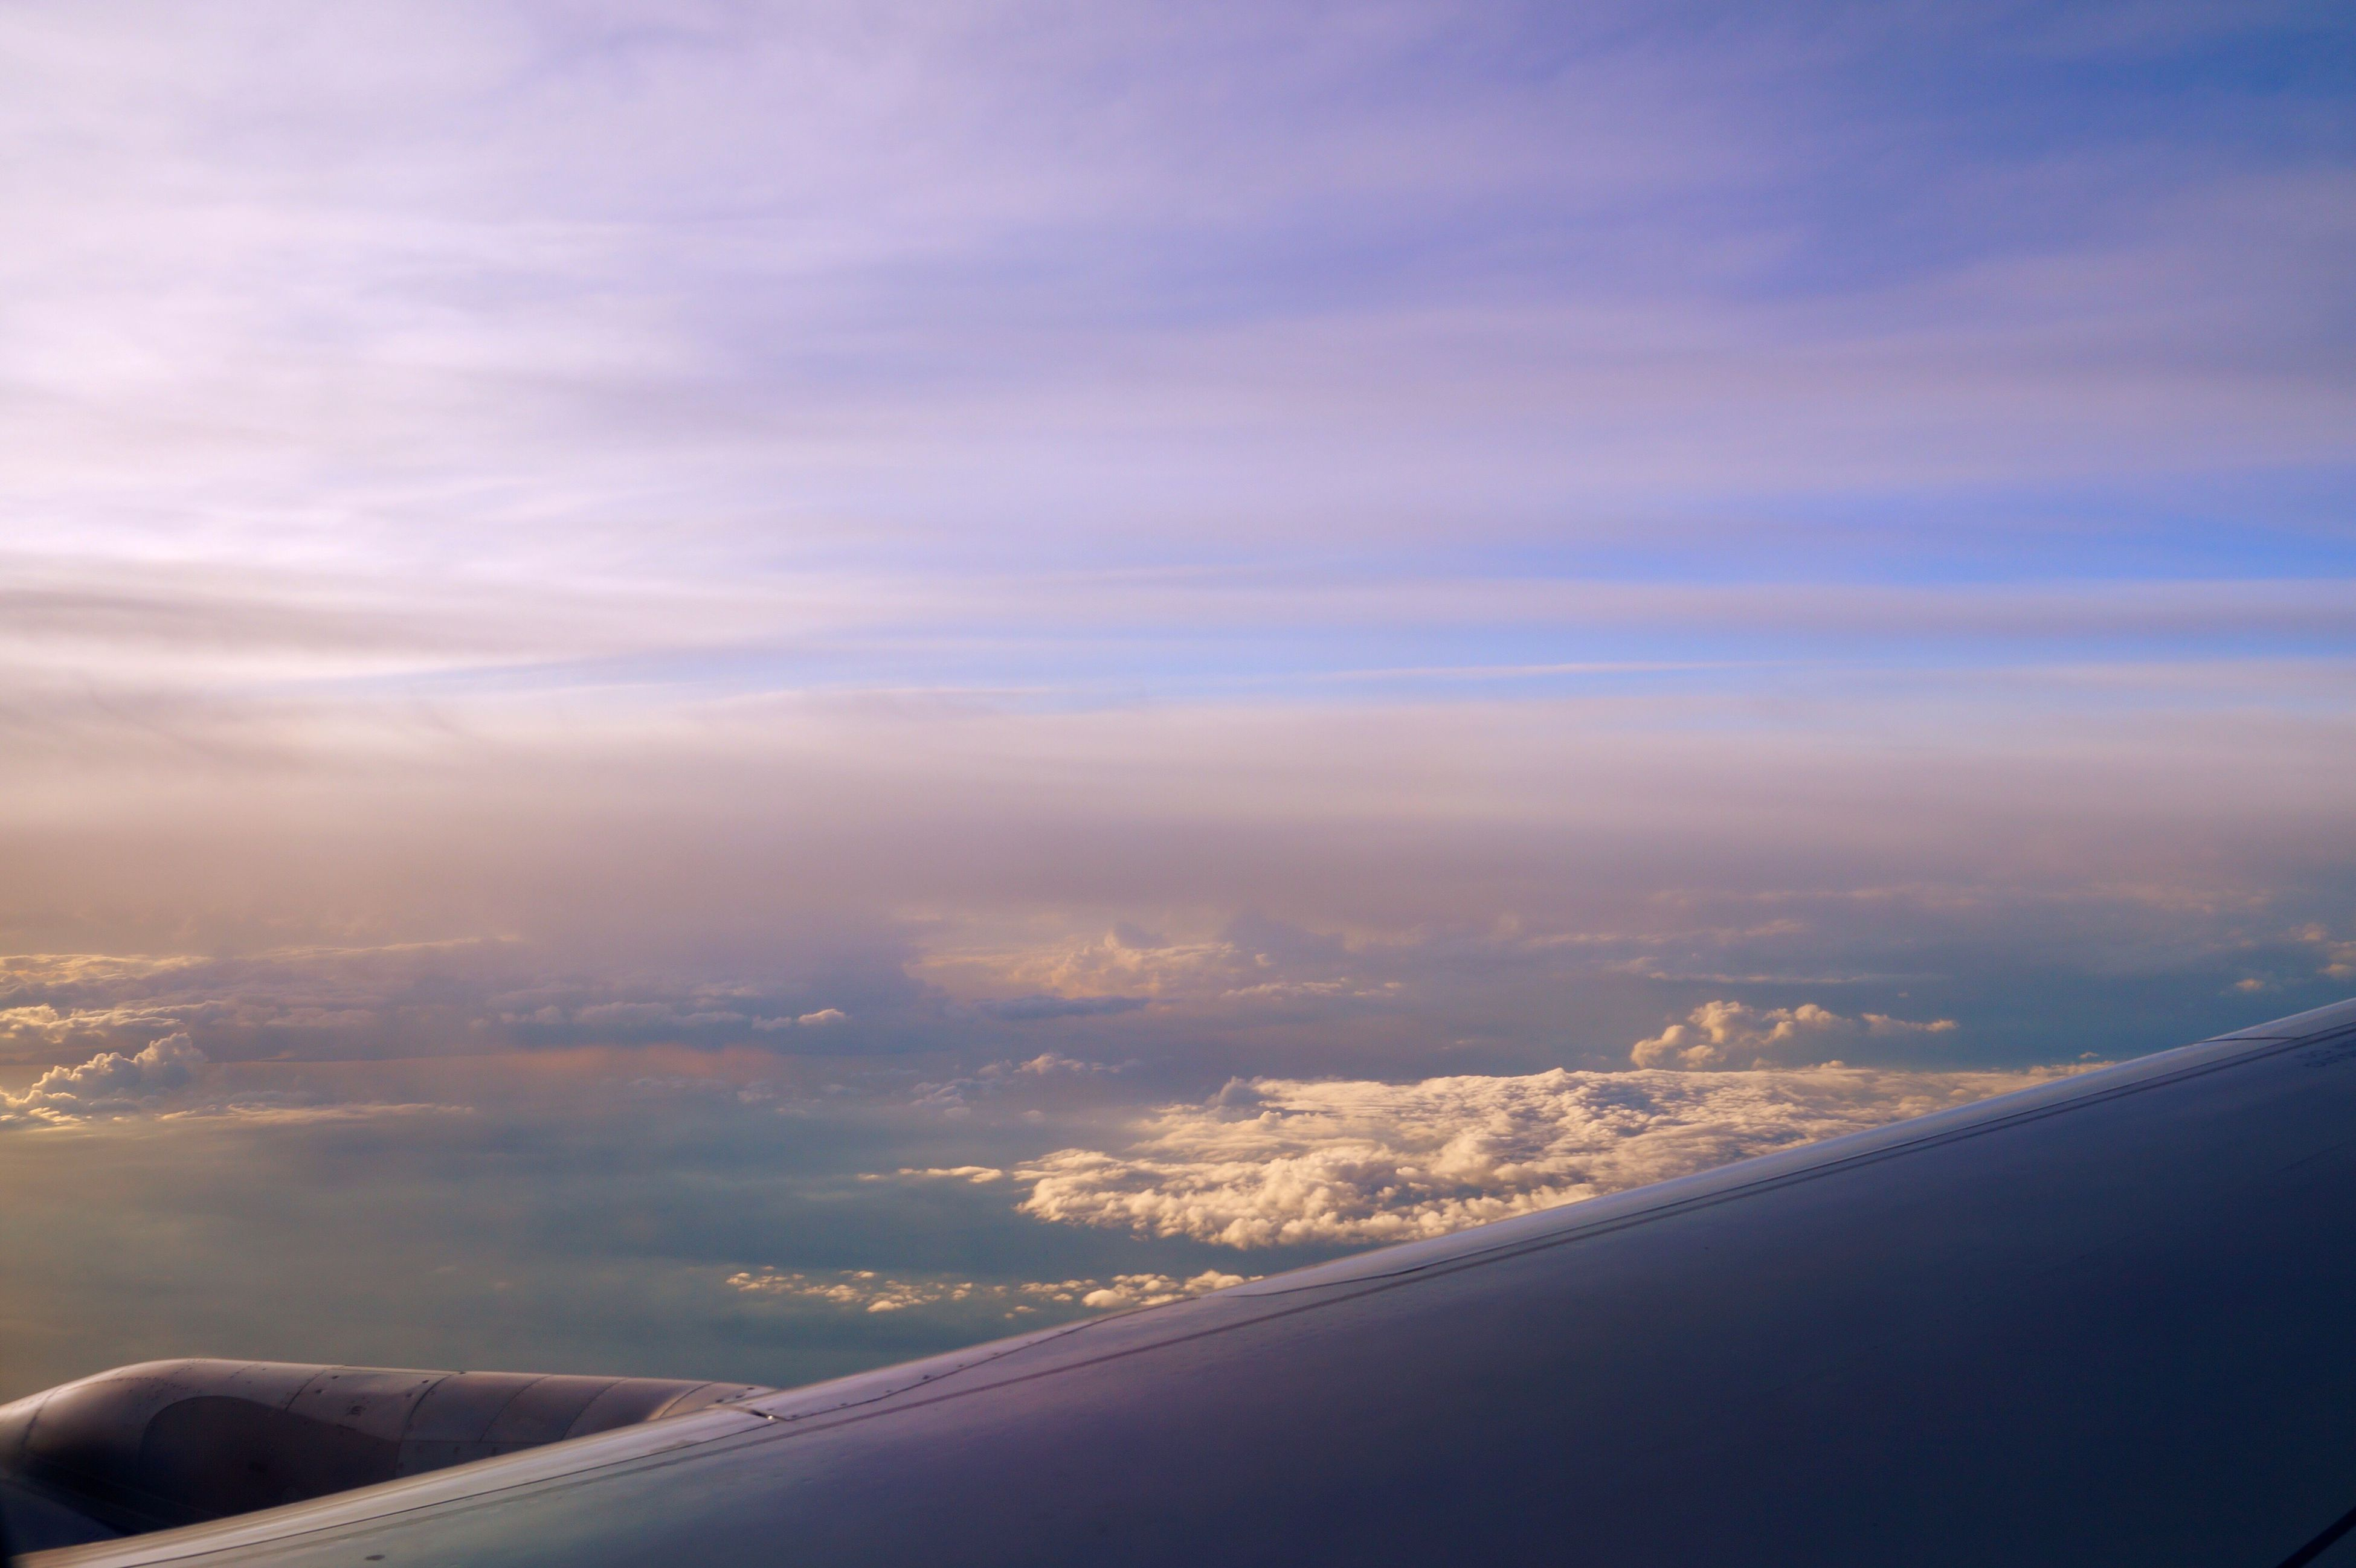 beauty in nature, scenics, aerial view, nature, sky, no people, cloud - sky, tranquility, airplane, tranquil scene, outdoors, landscape, day